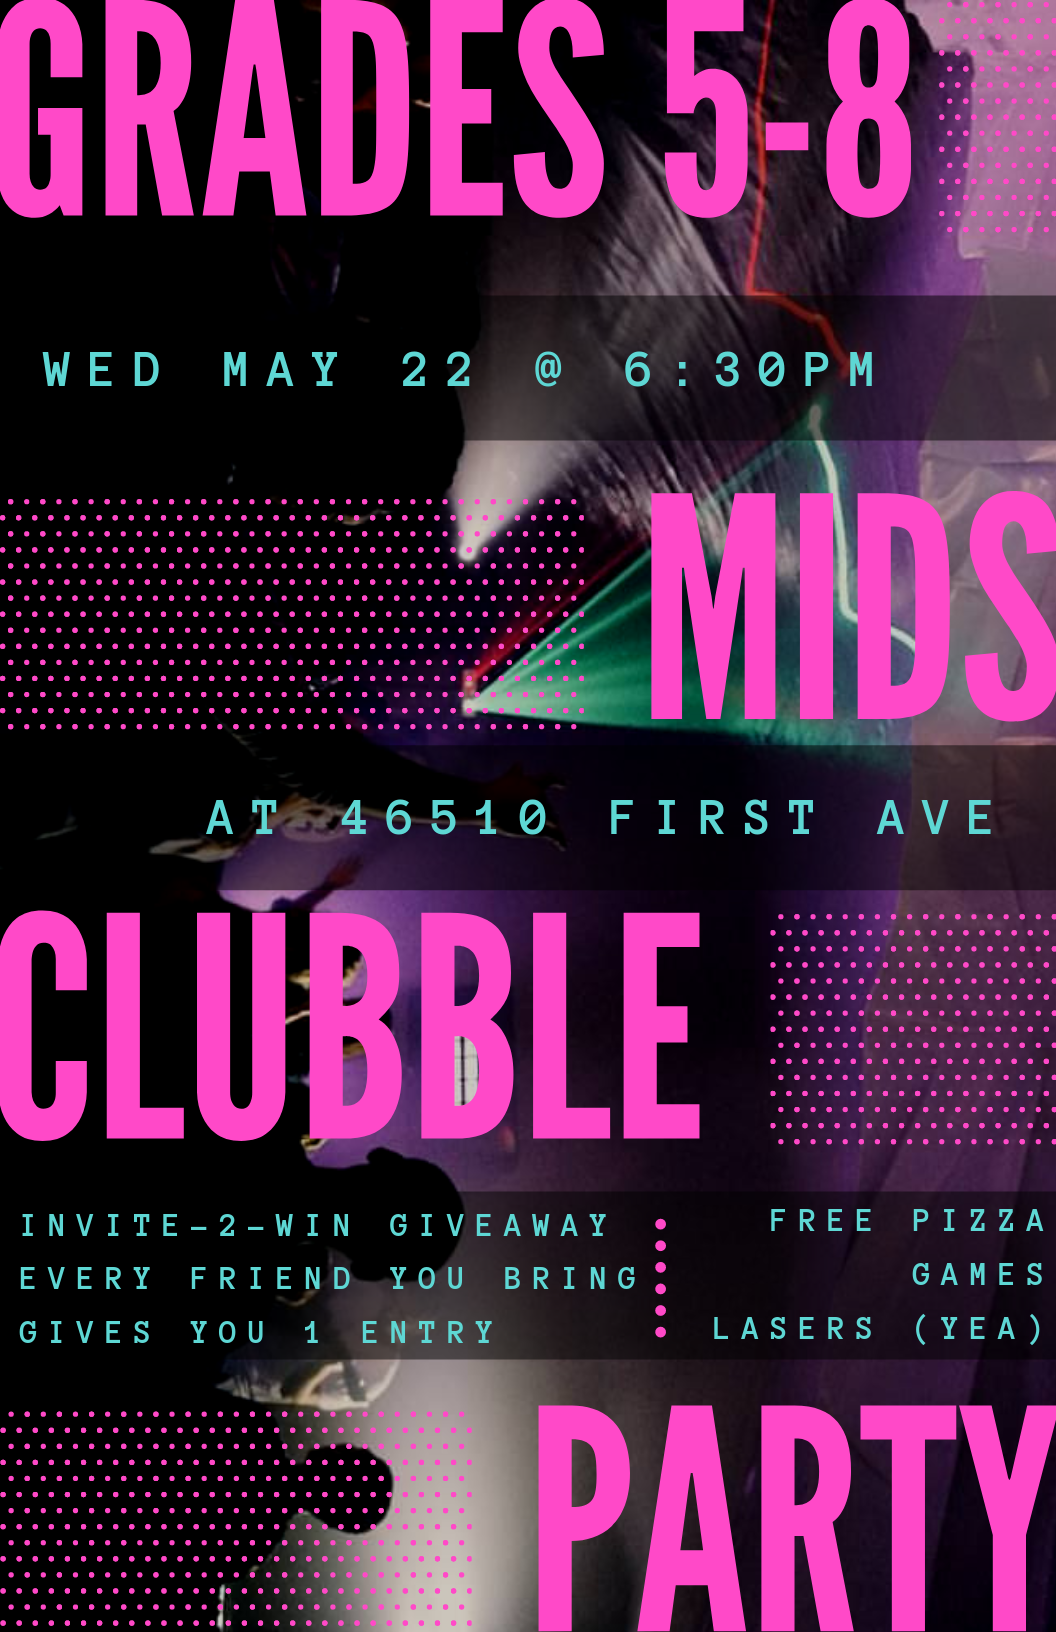 What happens when you combine a club and a bubble? - Clubble. We blow up a giant bubble. Turn on lasers and lights. Then we have a party! Get ready for our MIDS CLUBBLE PARTY! We're going to be playing some messy games and having tons of fun together. Oh ya, and there's FREE PIZZA at the end! Make sure you invite your friends, because every friend you bring get you one entry to win a 2 foot long, 3lb Gummy Worm!If you have any questions, feel free to call our Youth Pastor, Jesse Leimer at604-792-0794 or email at jesse@firstave.org.